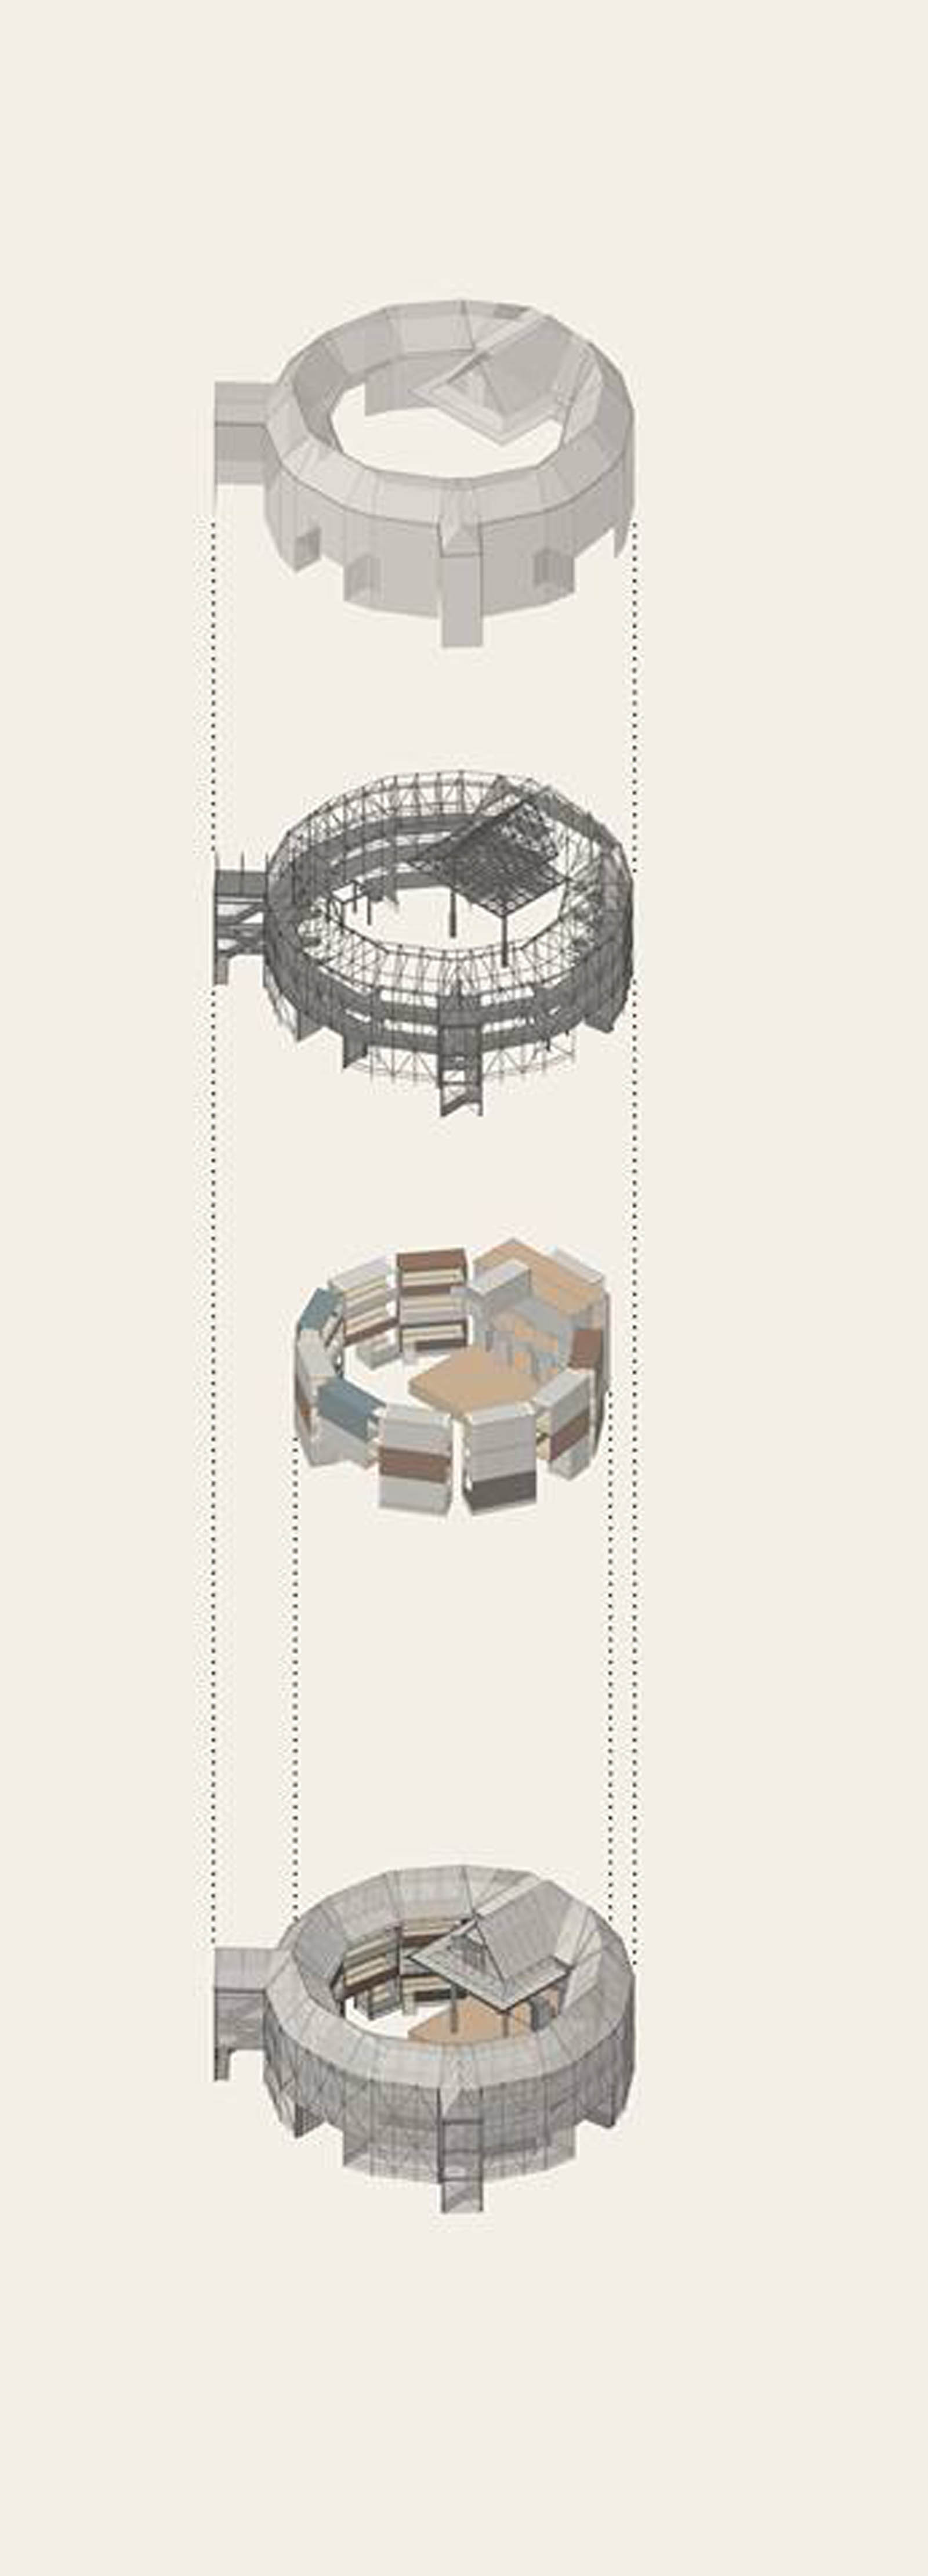 Mesh Wrapped Globe Theatre Proposed For Travel Fabric